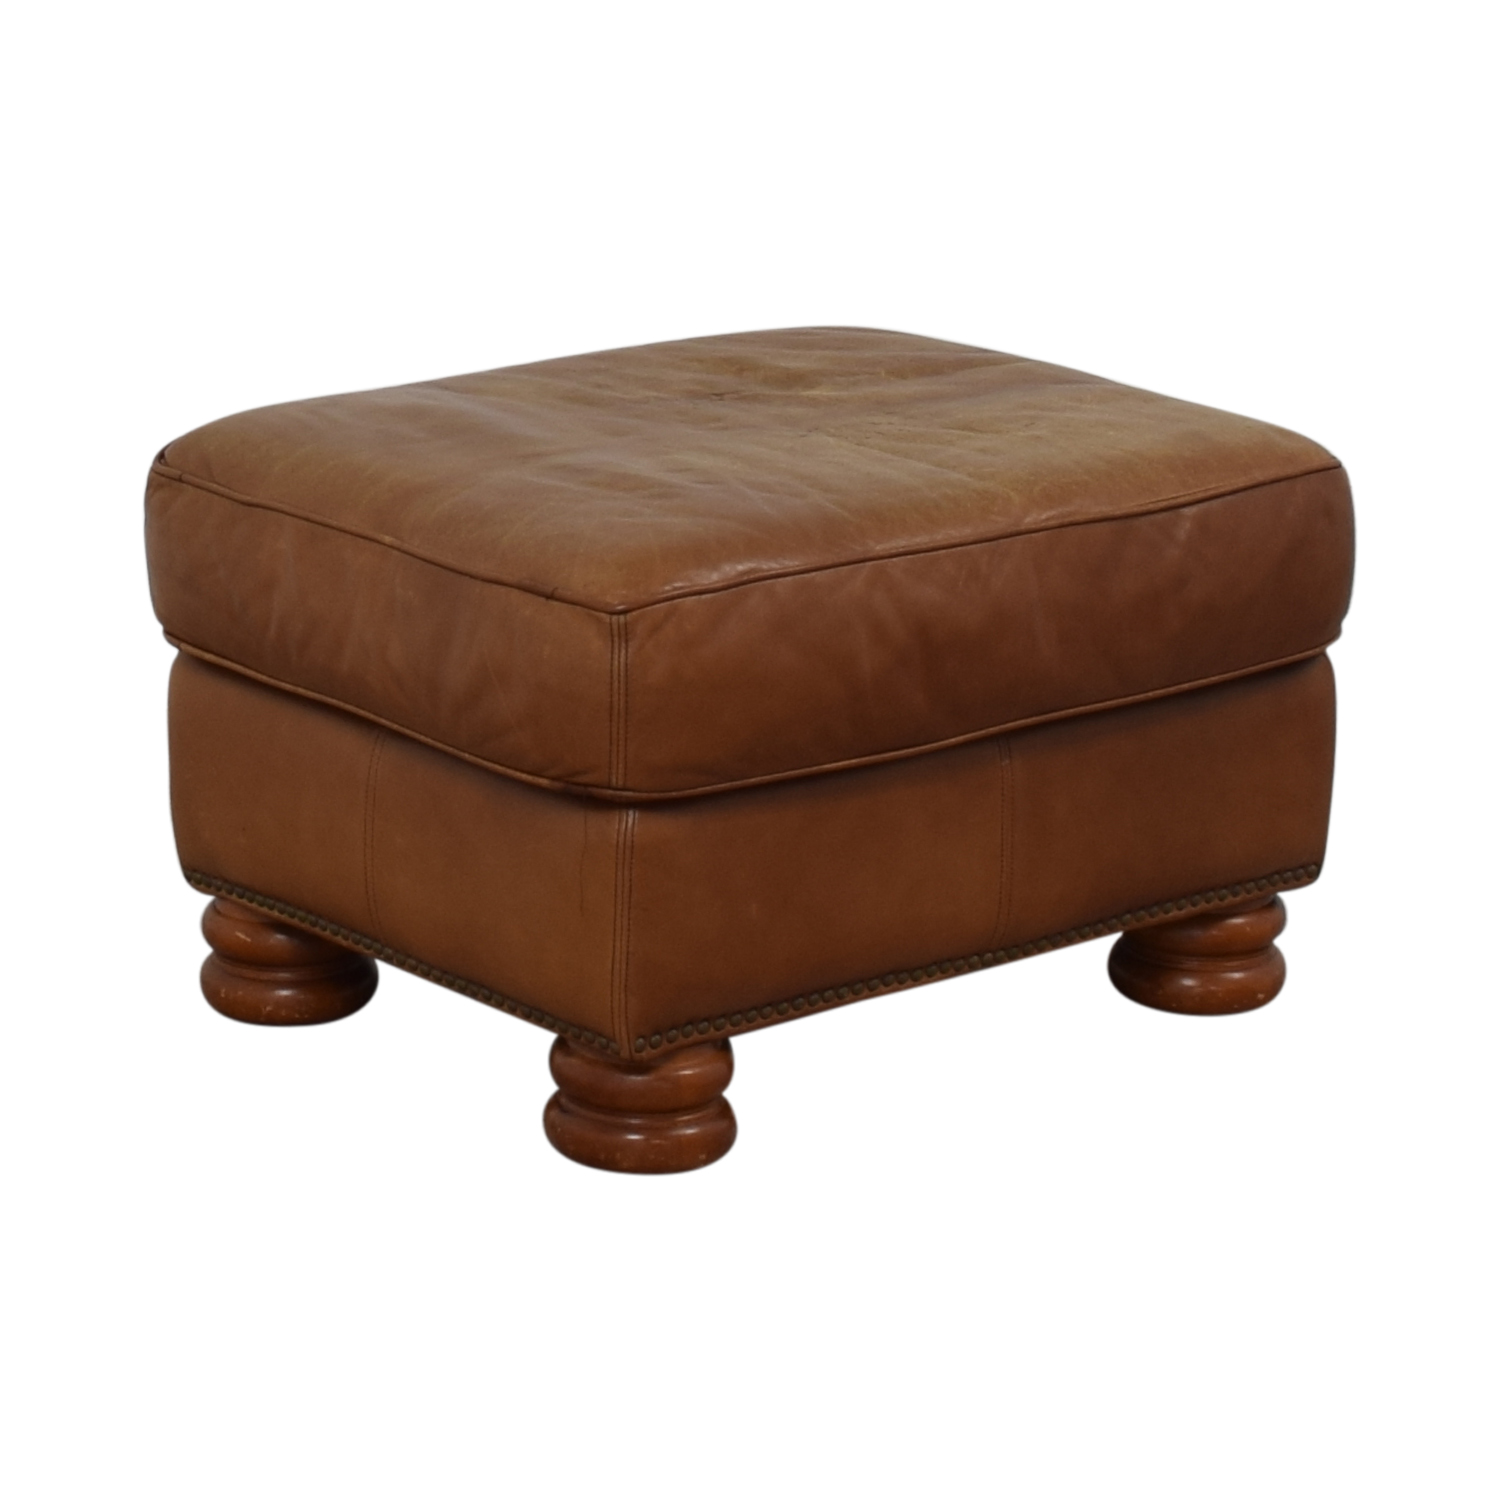 Thomasville Brown Leather Ottoman / Ottomans